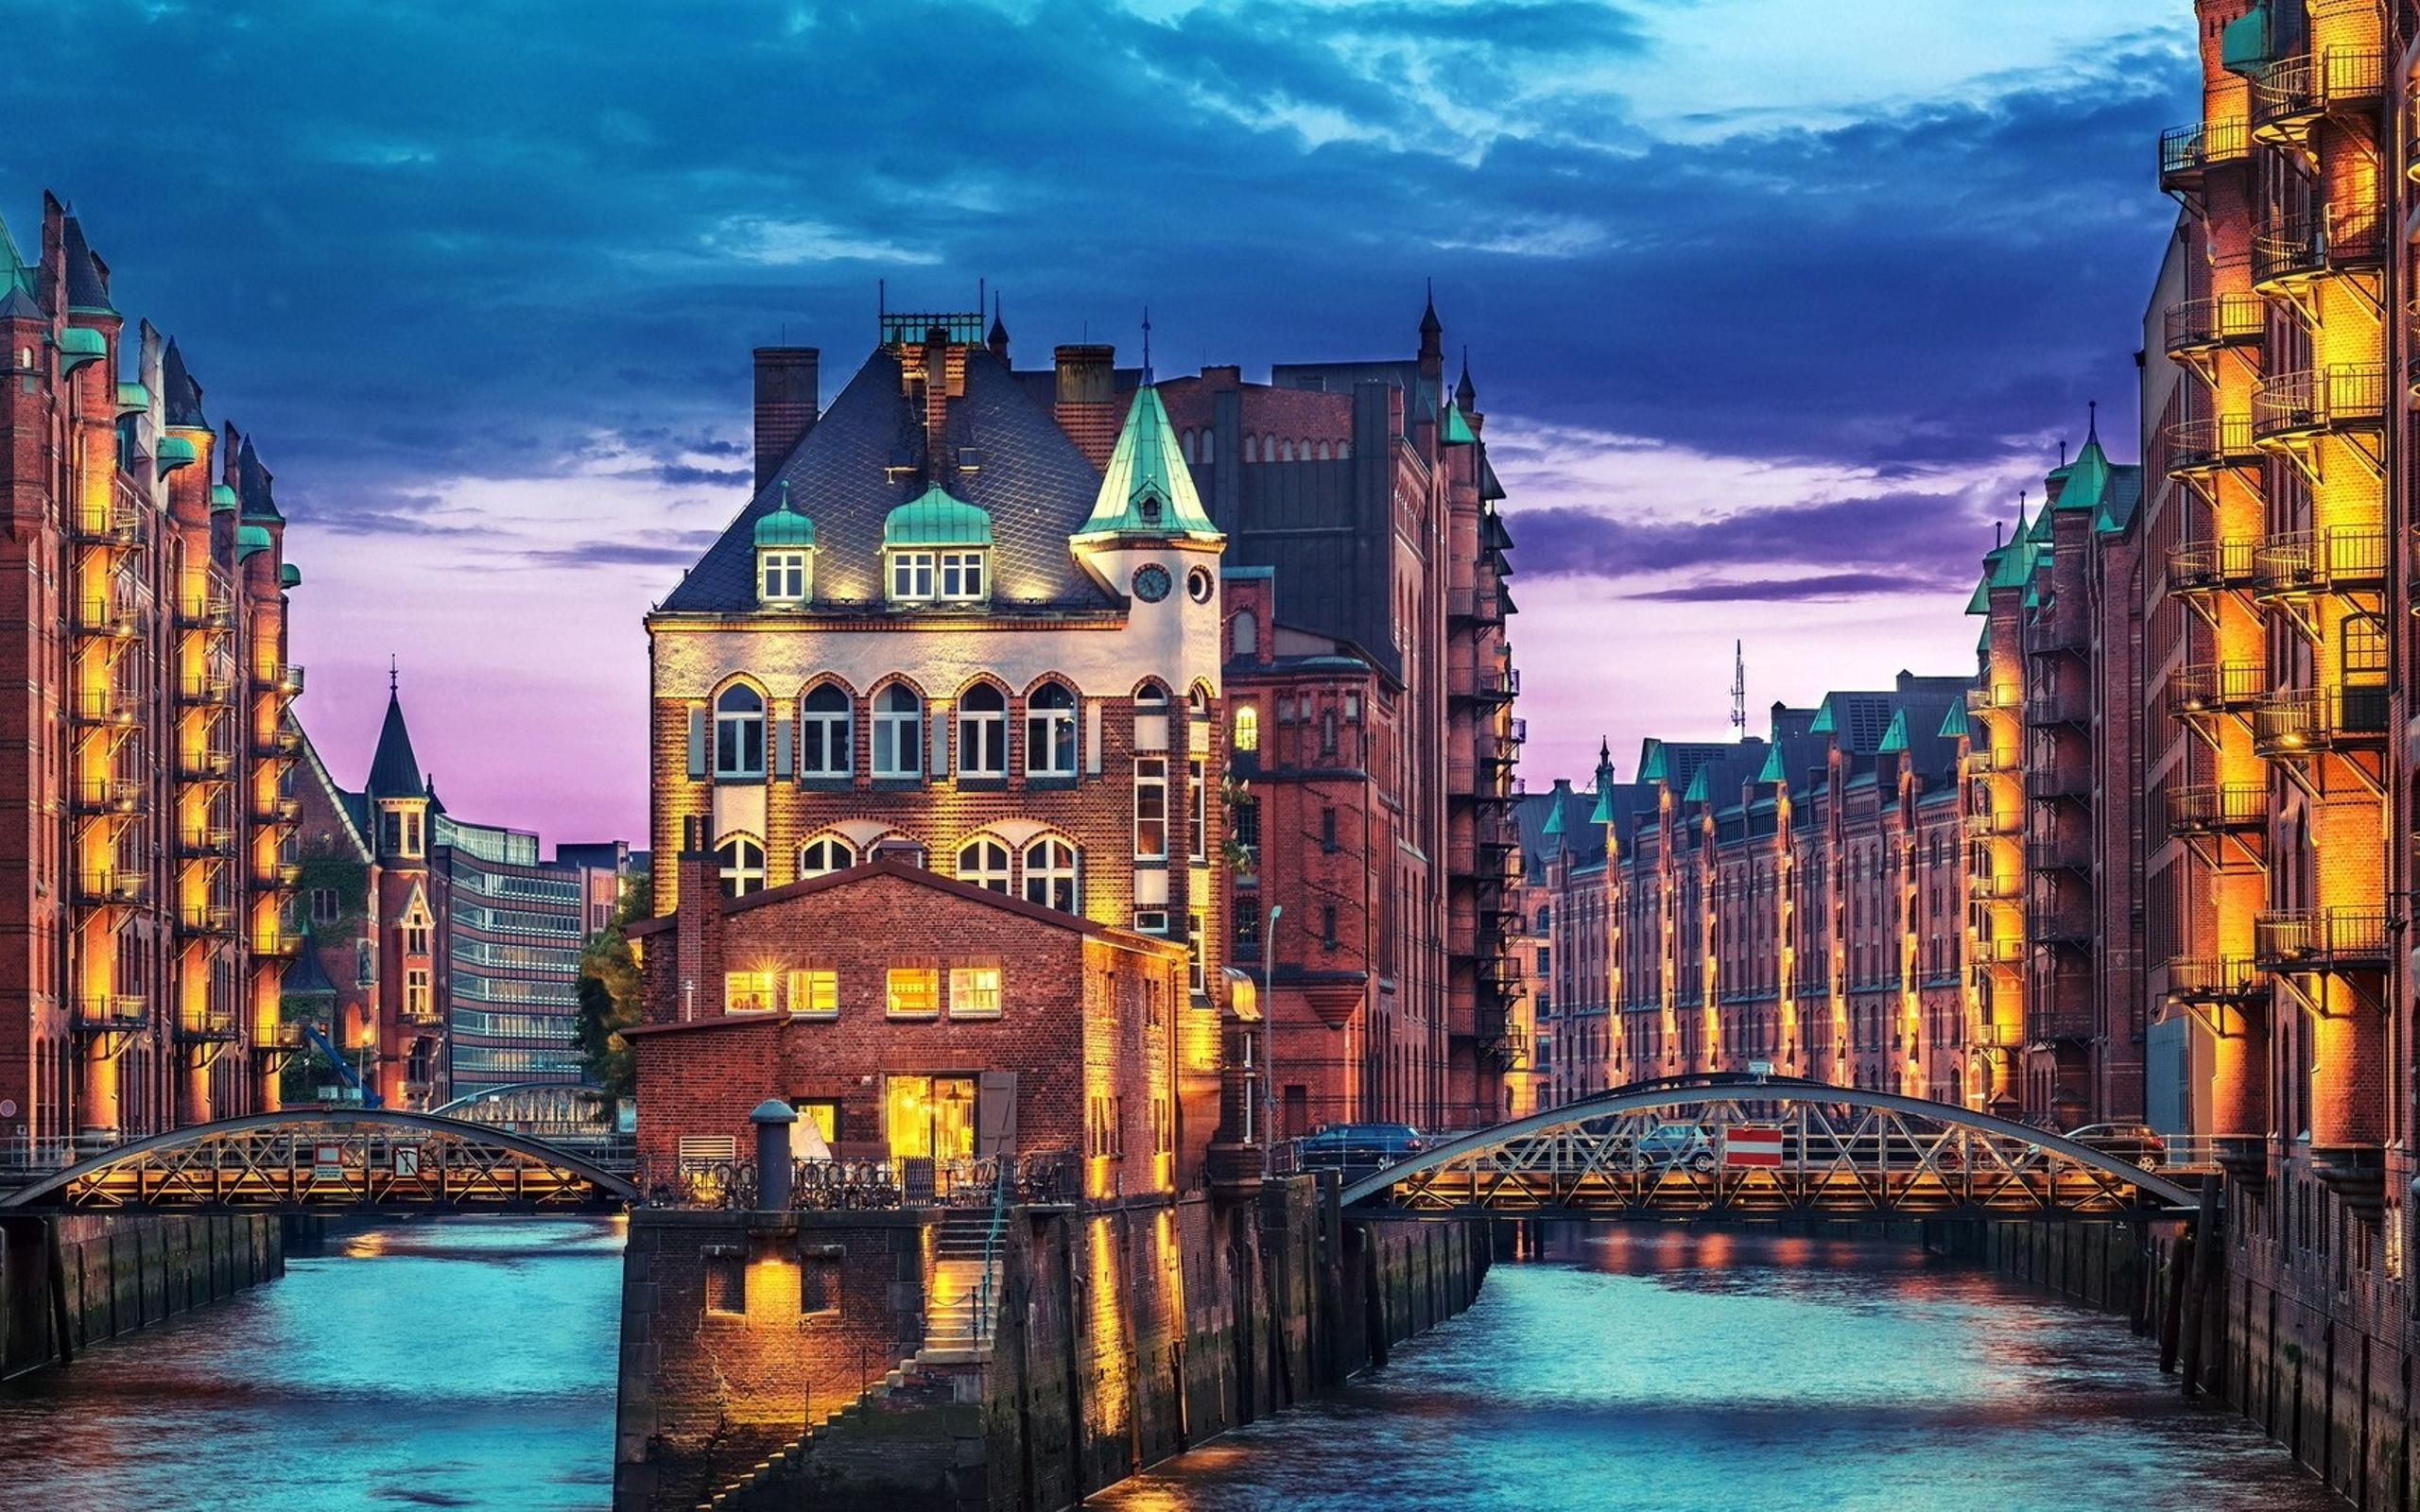 buildings in hamburg city - buildings on water wallpaper download